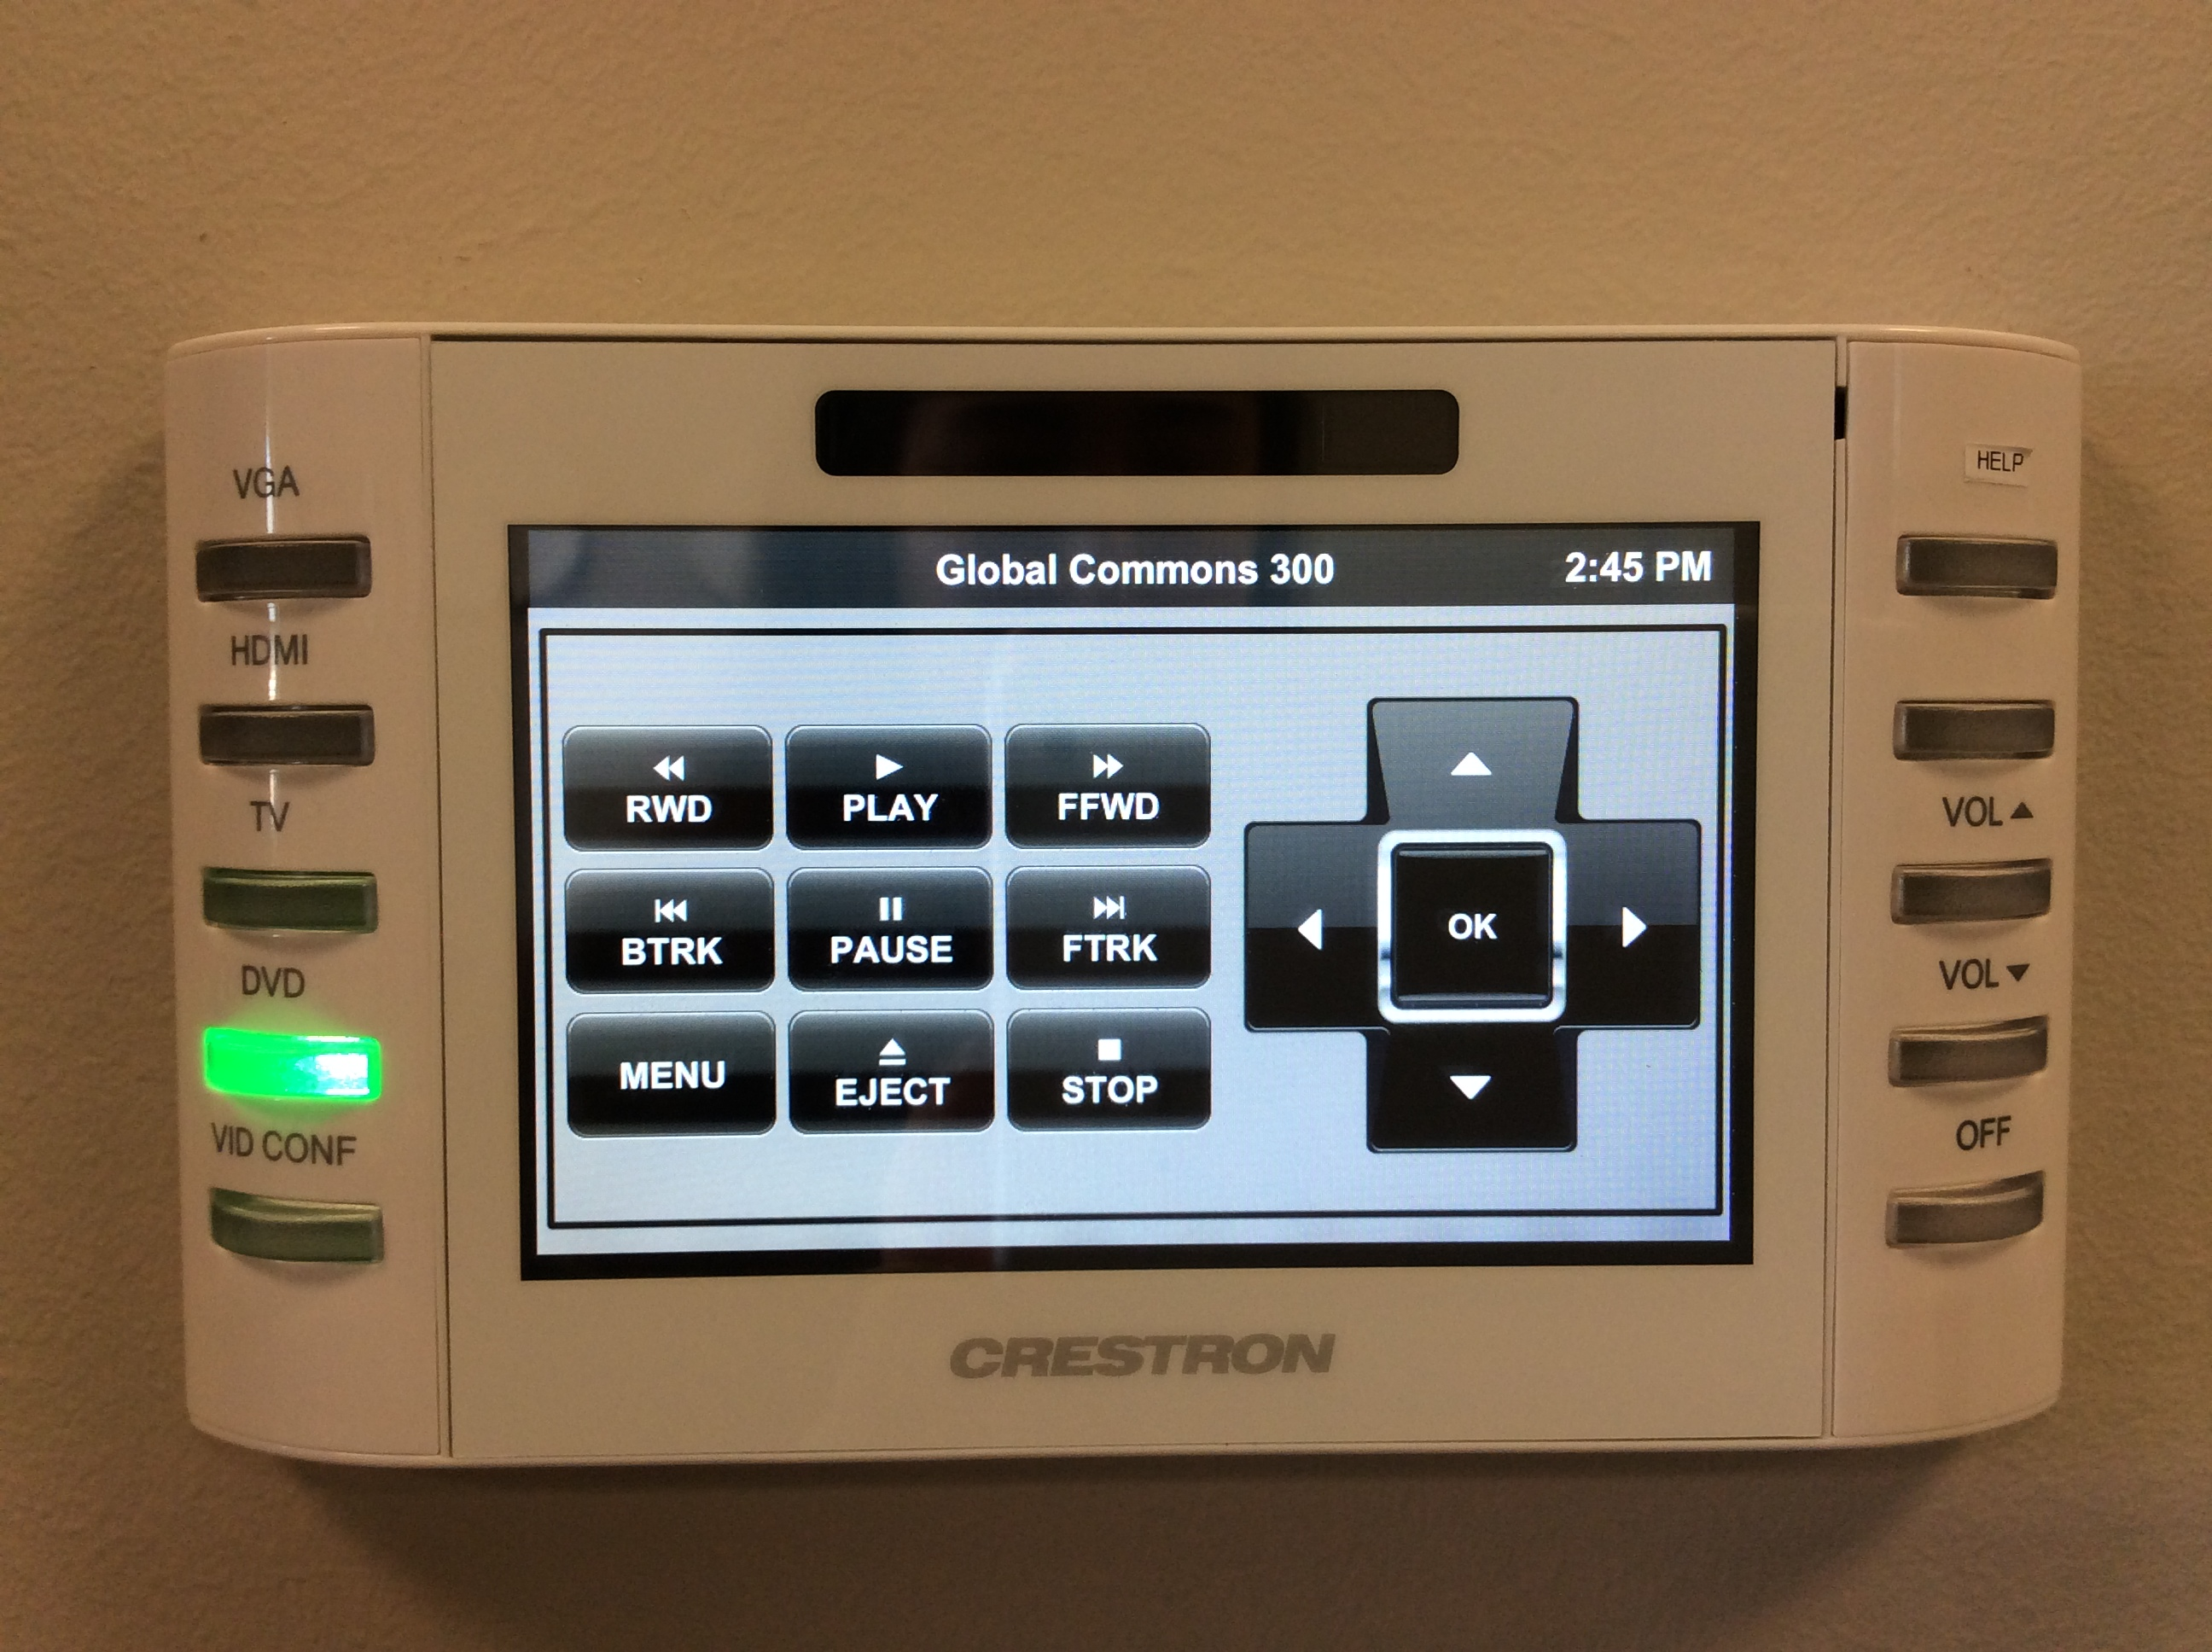 Photo of crestron control touch panel with dvd option active